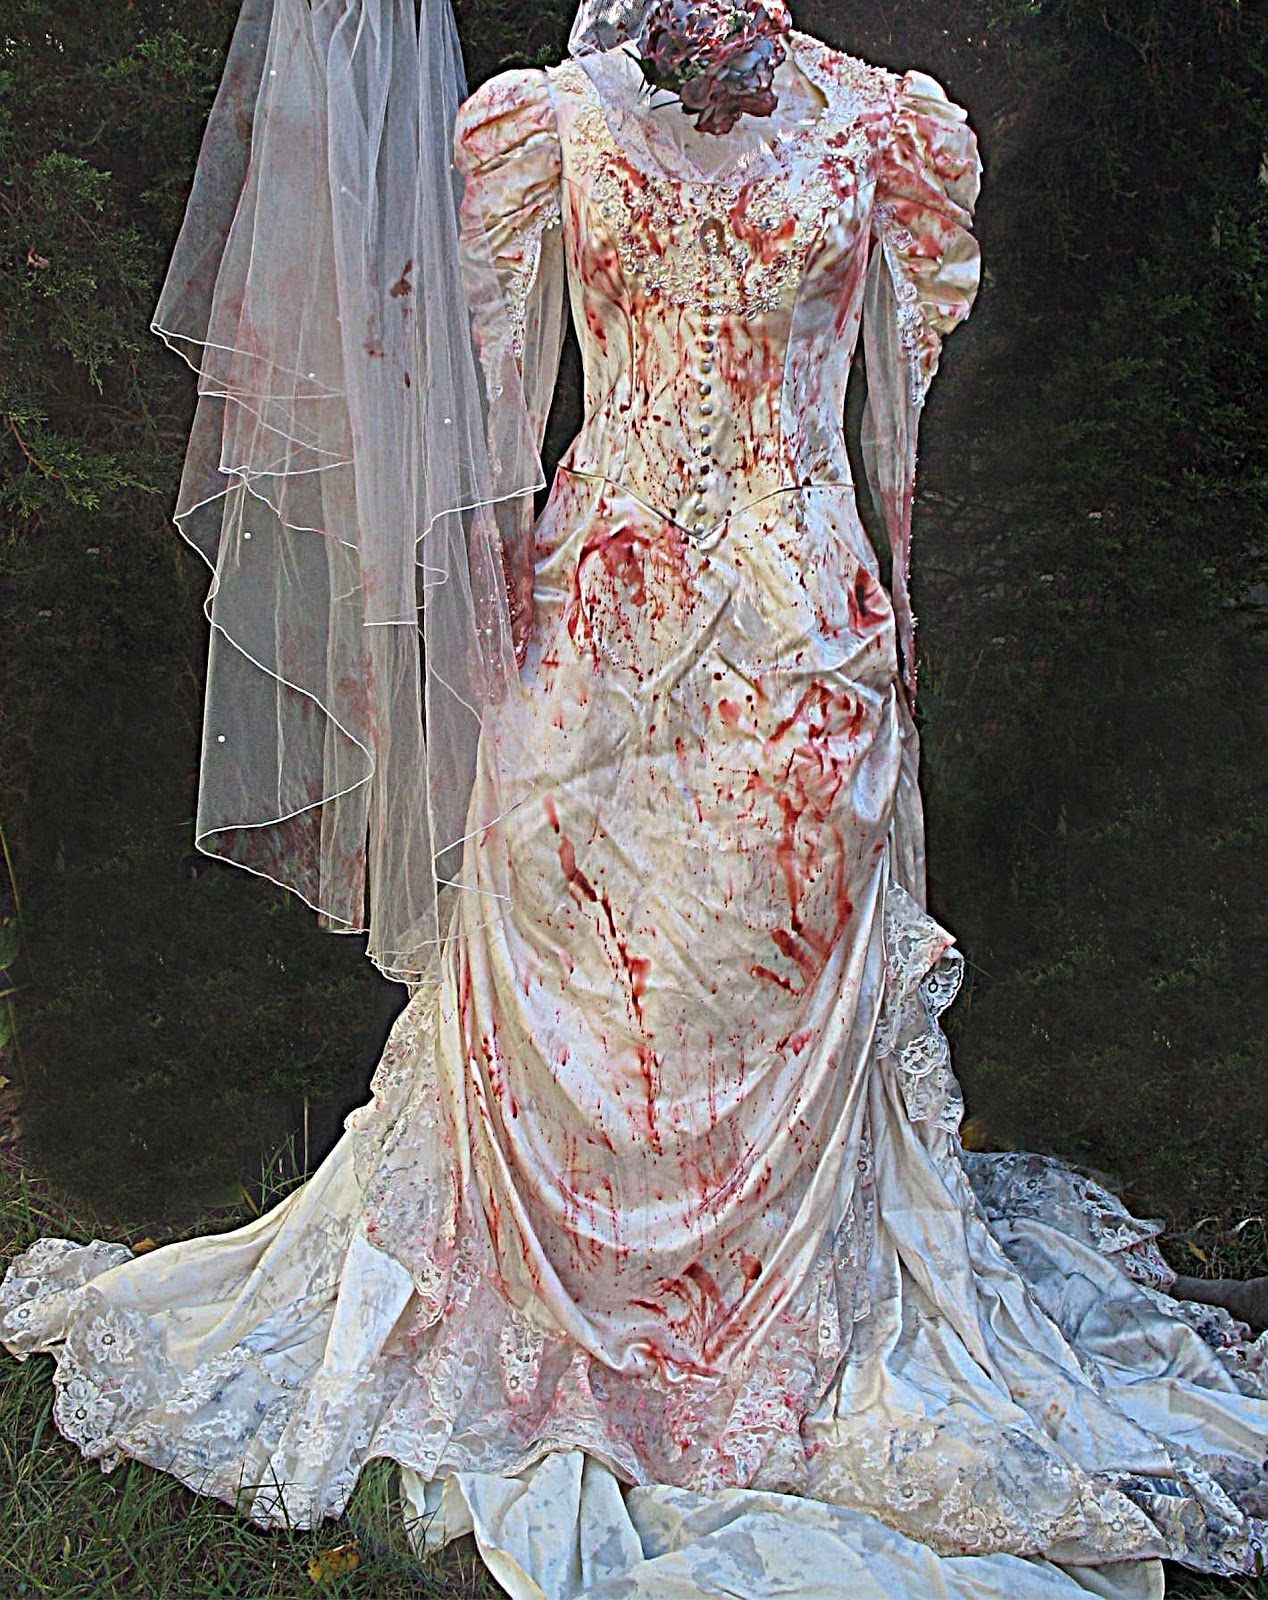 Zombie Wedding Dress For  : Zombie wedding dress uniixe